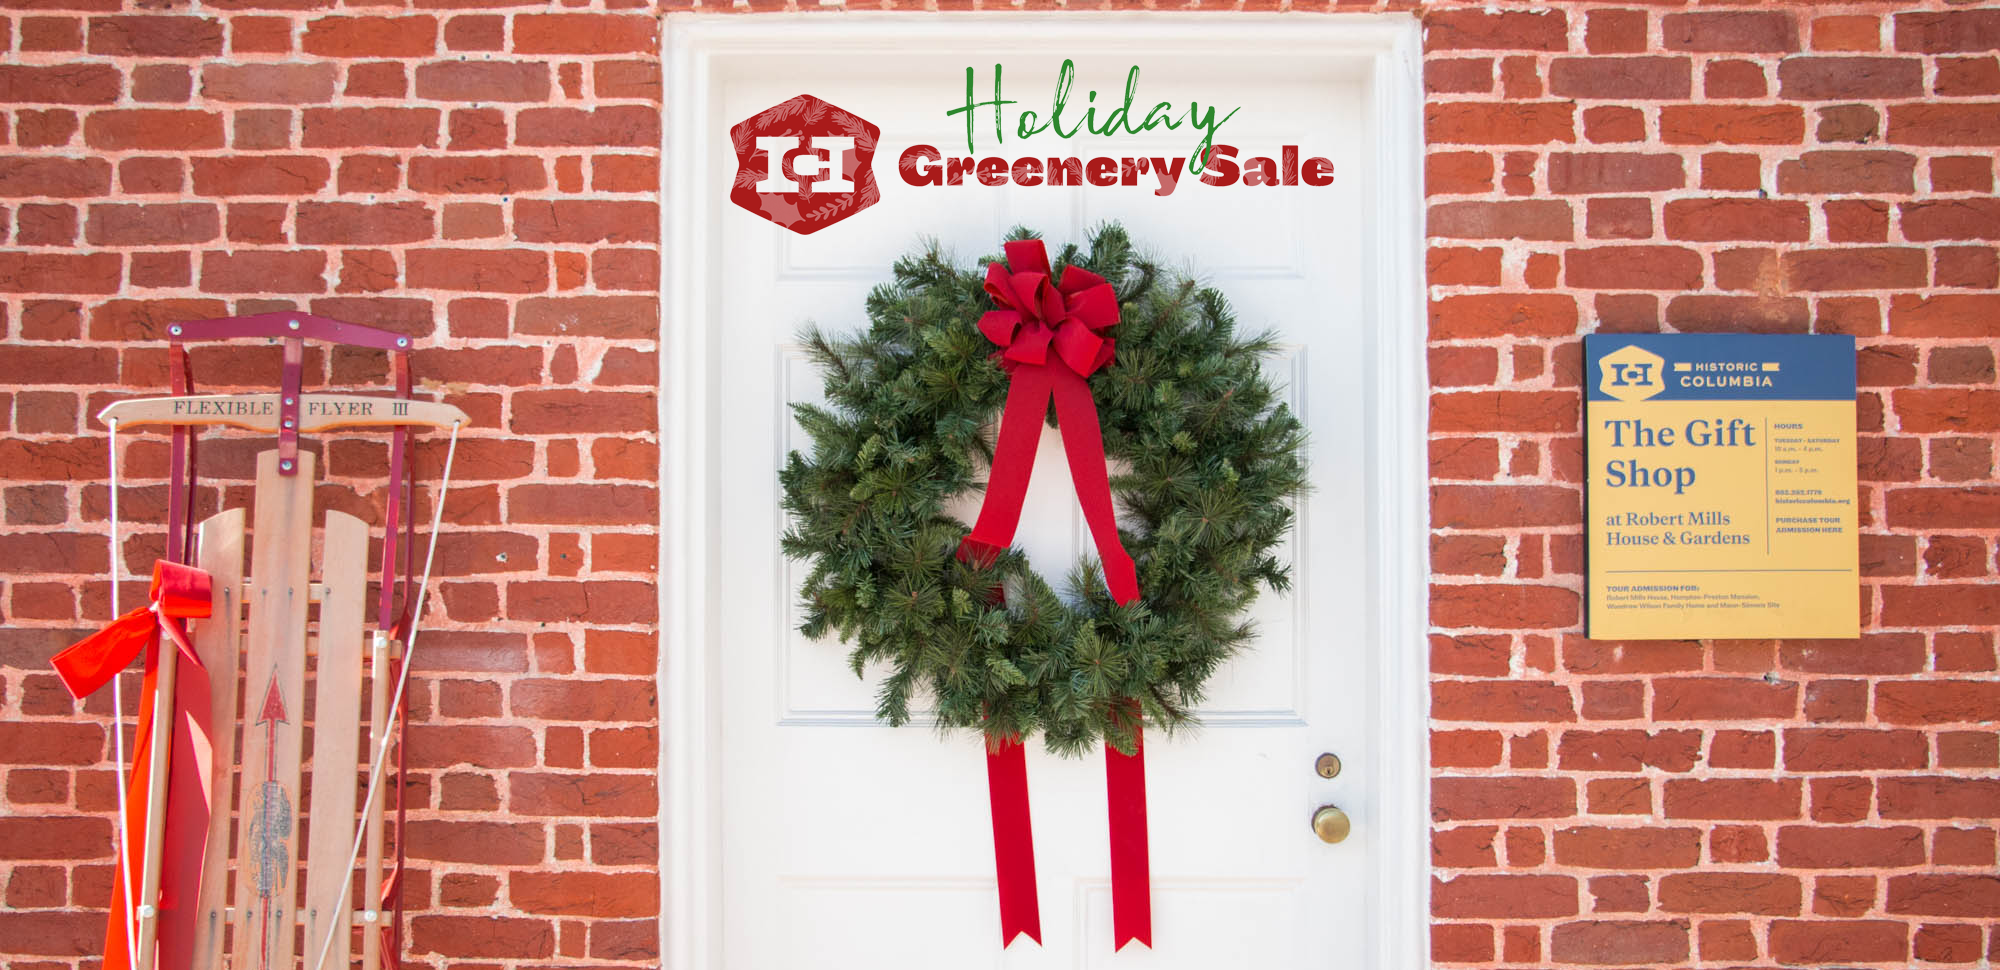 Historic Columbia's Annual Holiday Greenery Sale